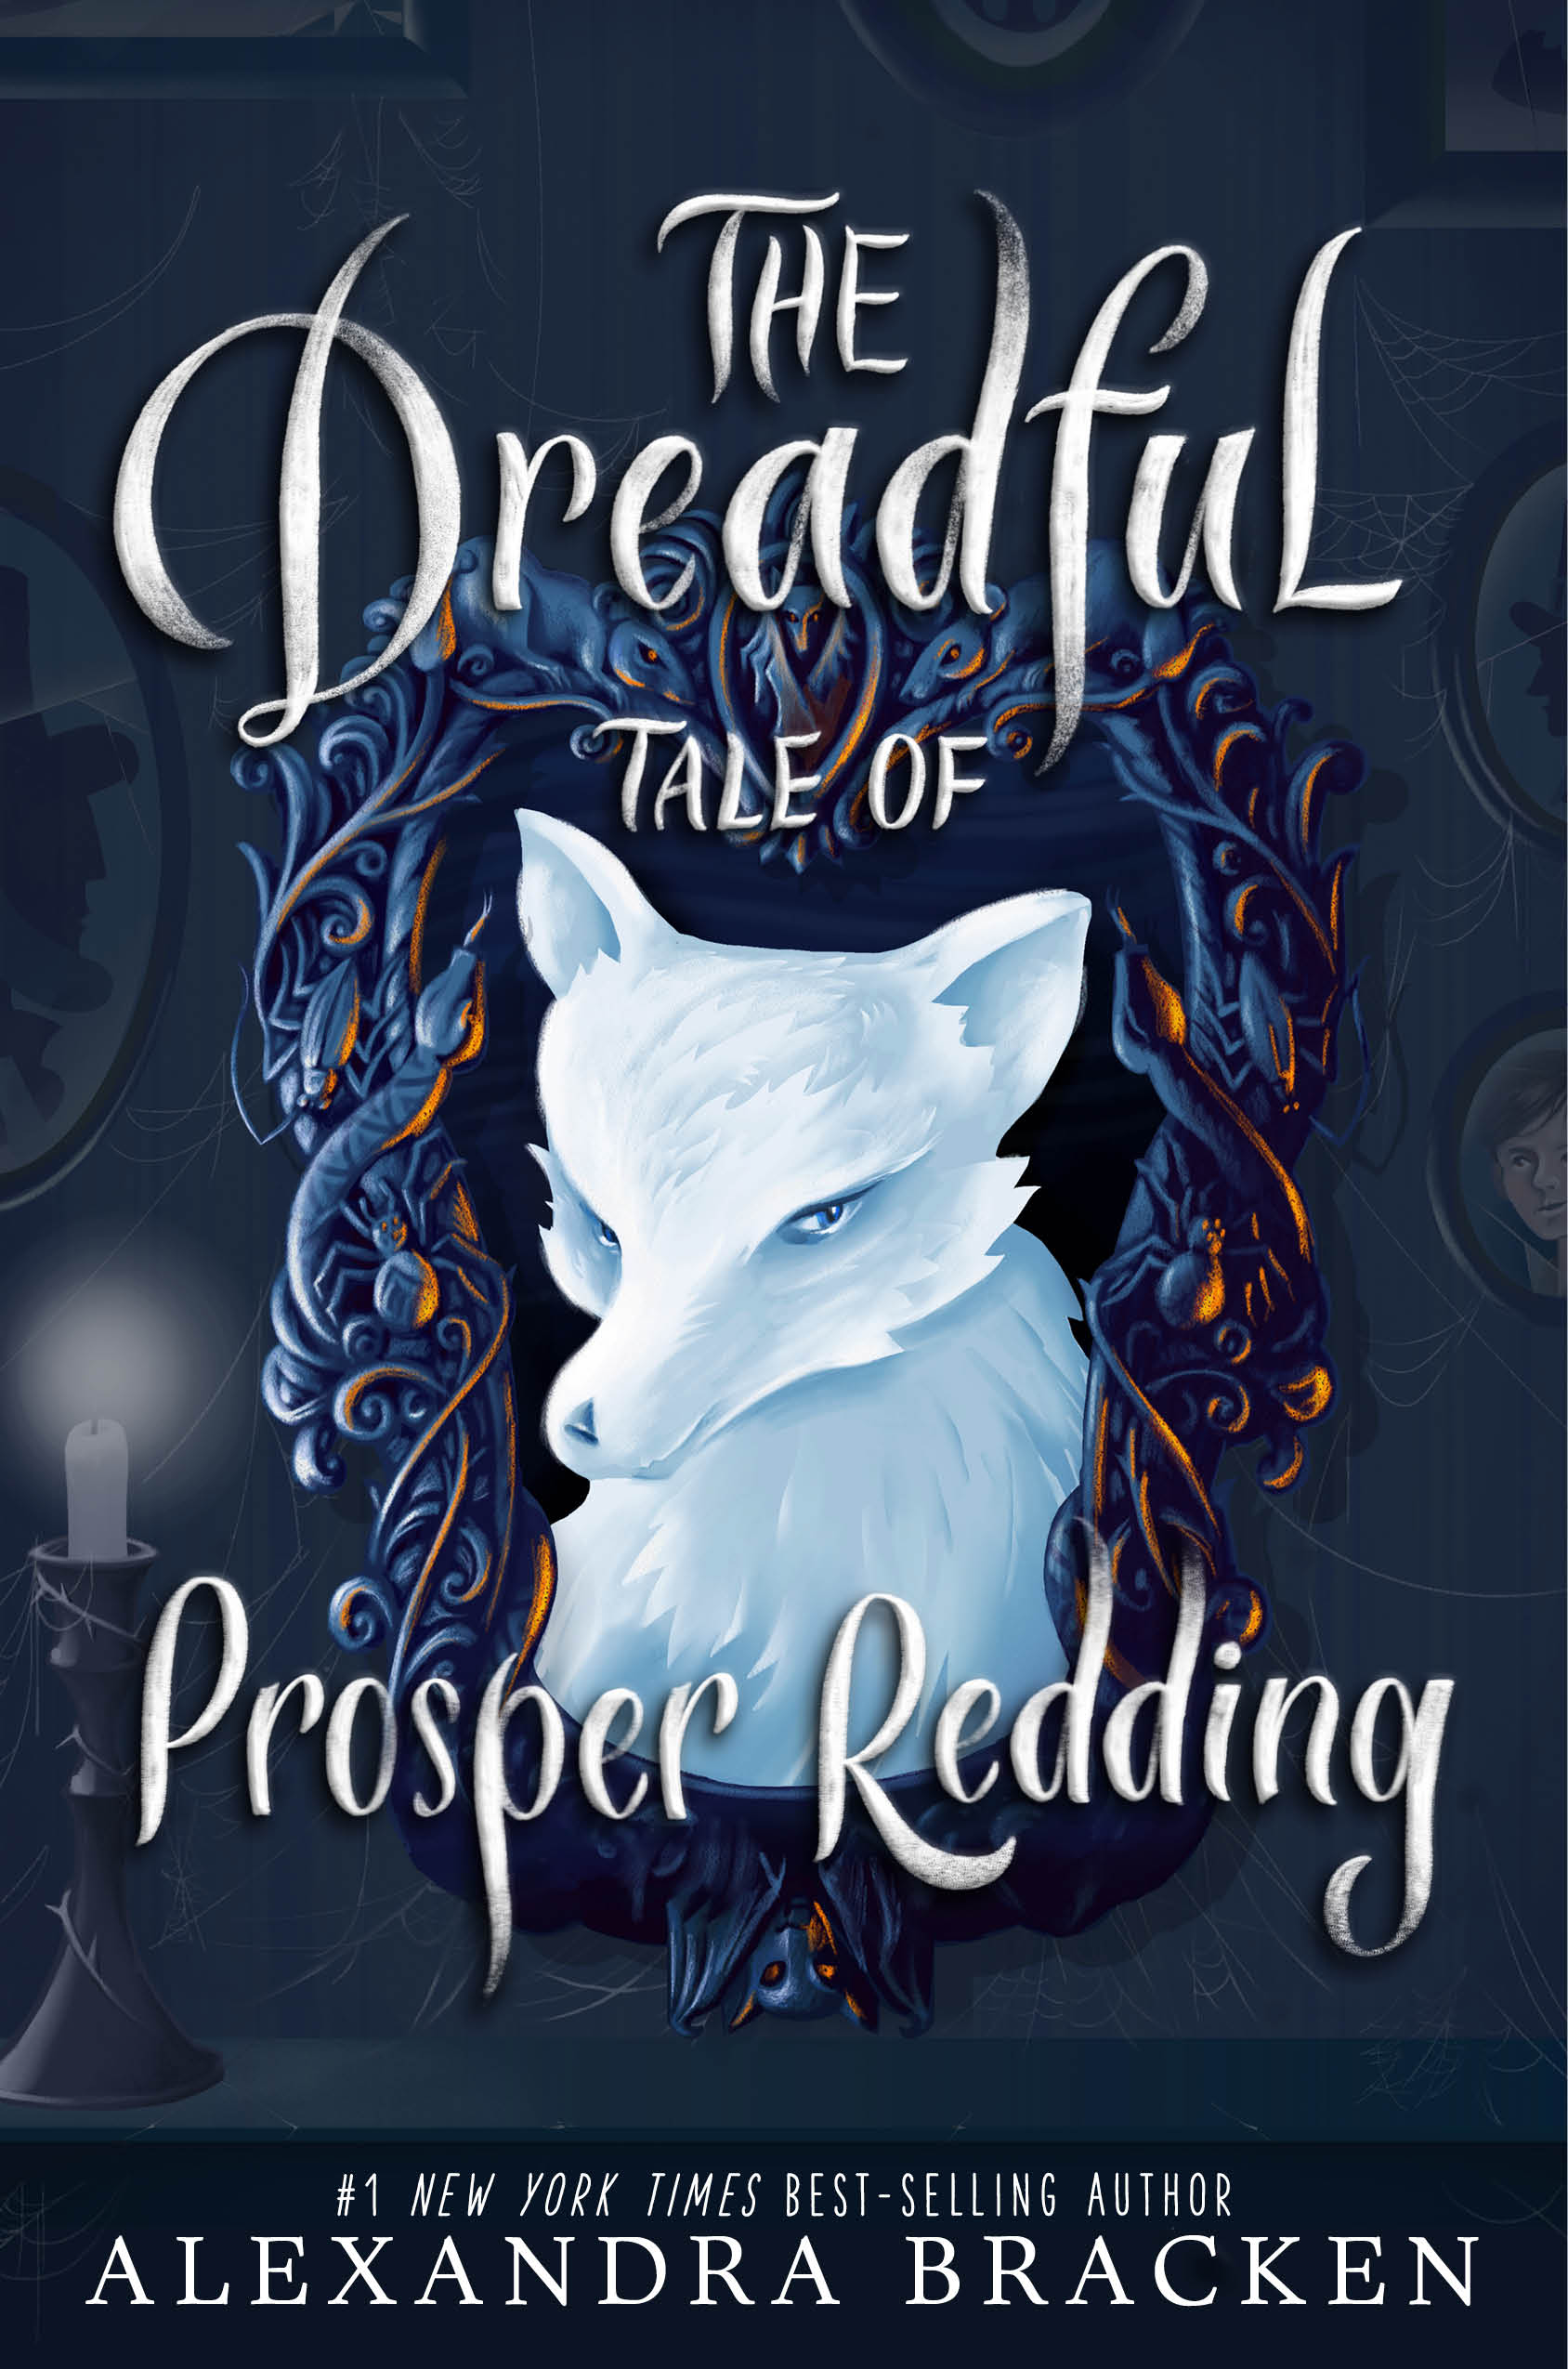 Alexandra Bracken PROSPER REDDING final cover.jpg